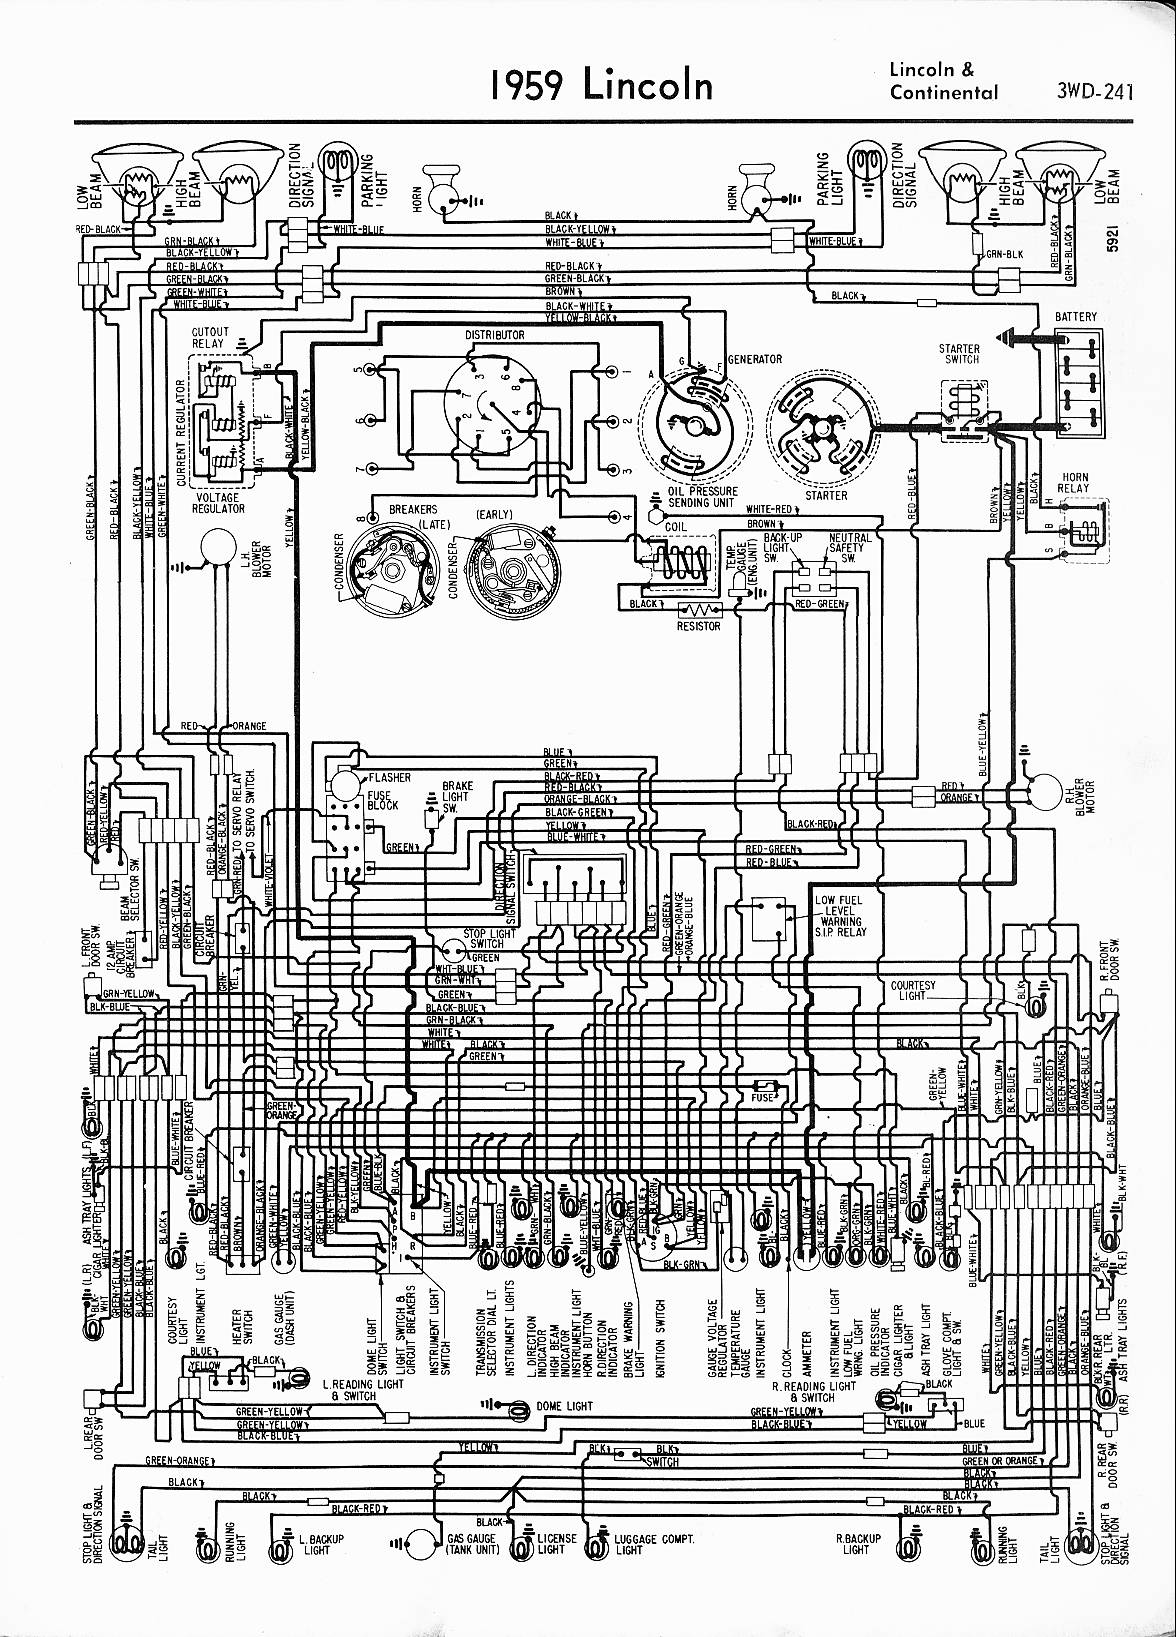 1966 Ford Pick Up Engine Wiring Diagram Real 66 C10 Diagrams For Lincoln Continental Schematics Rh Caltech Ctp Com F100